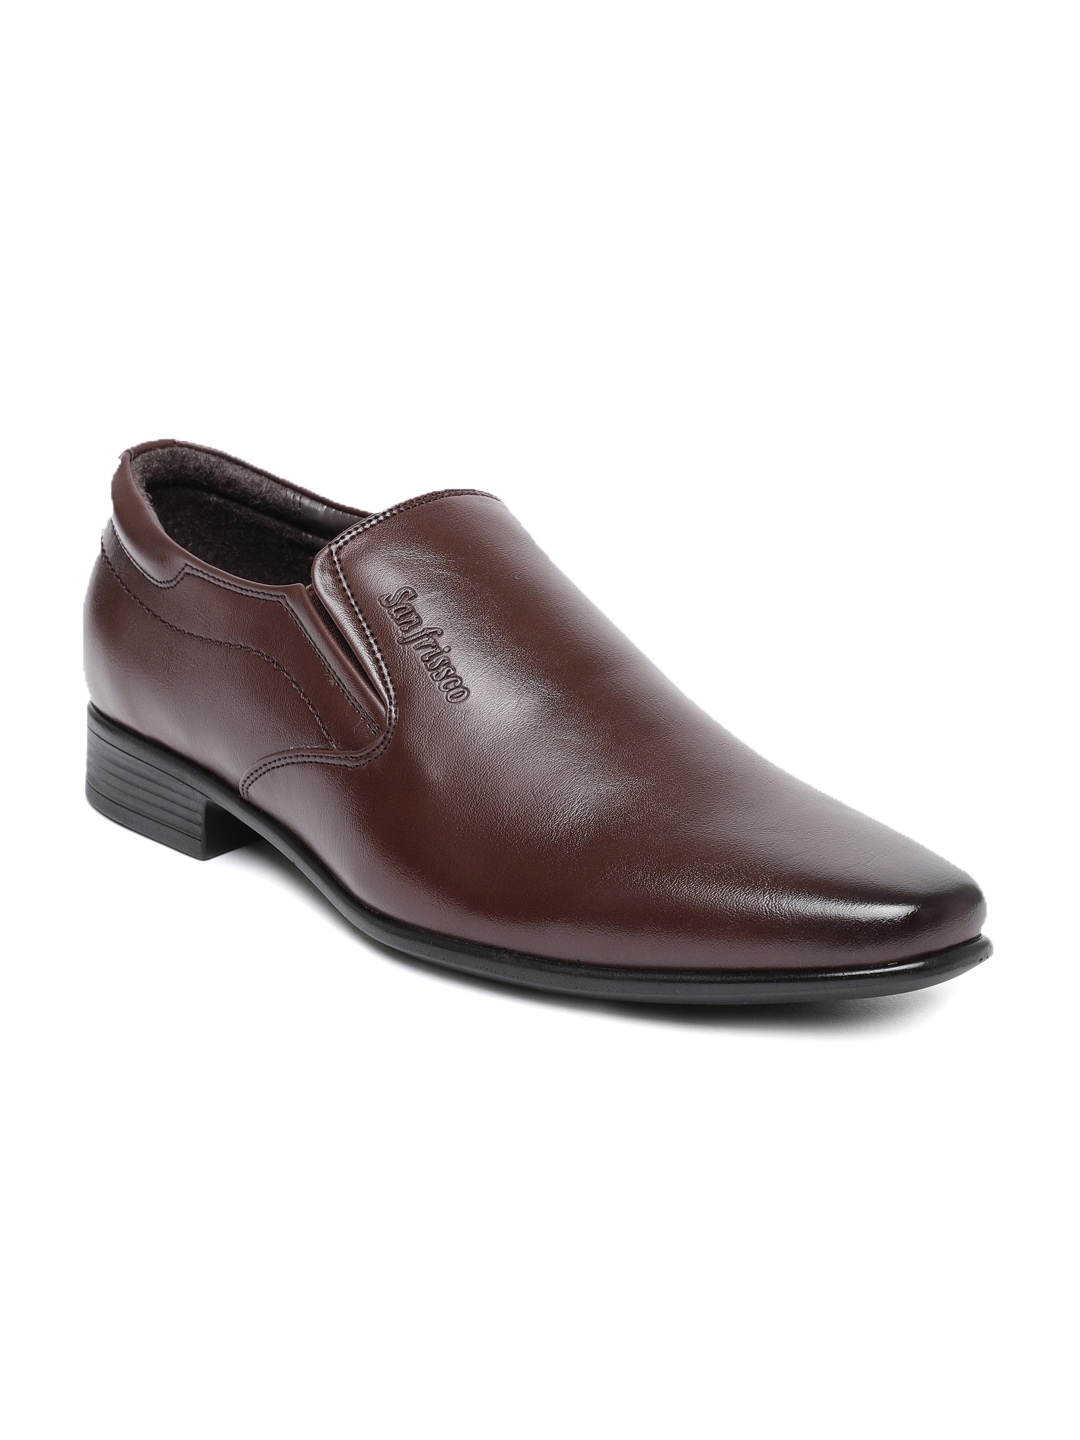 e1e7f8297ad3e Sale Formal Shoes - Buy Sale Formal Shoes online in India